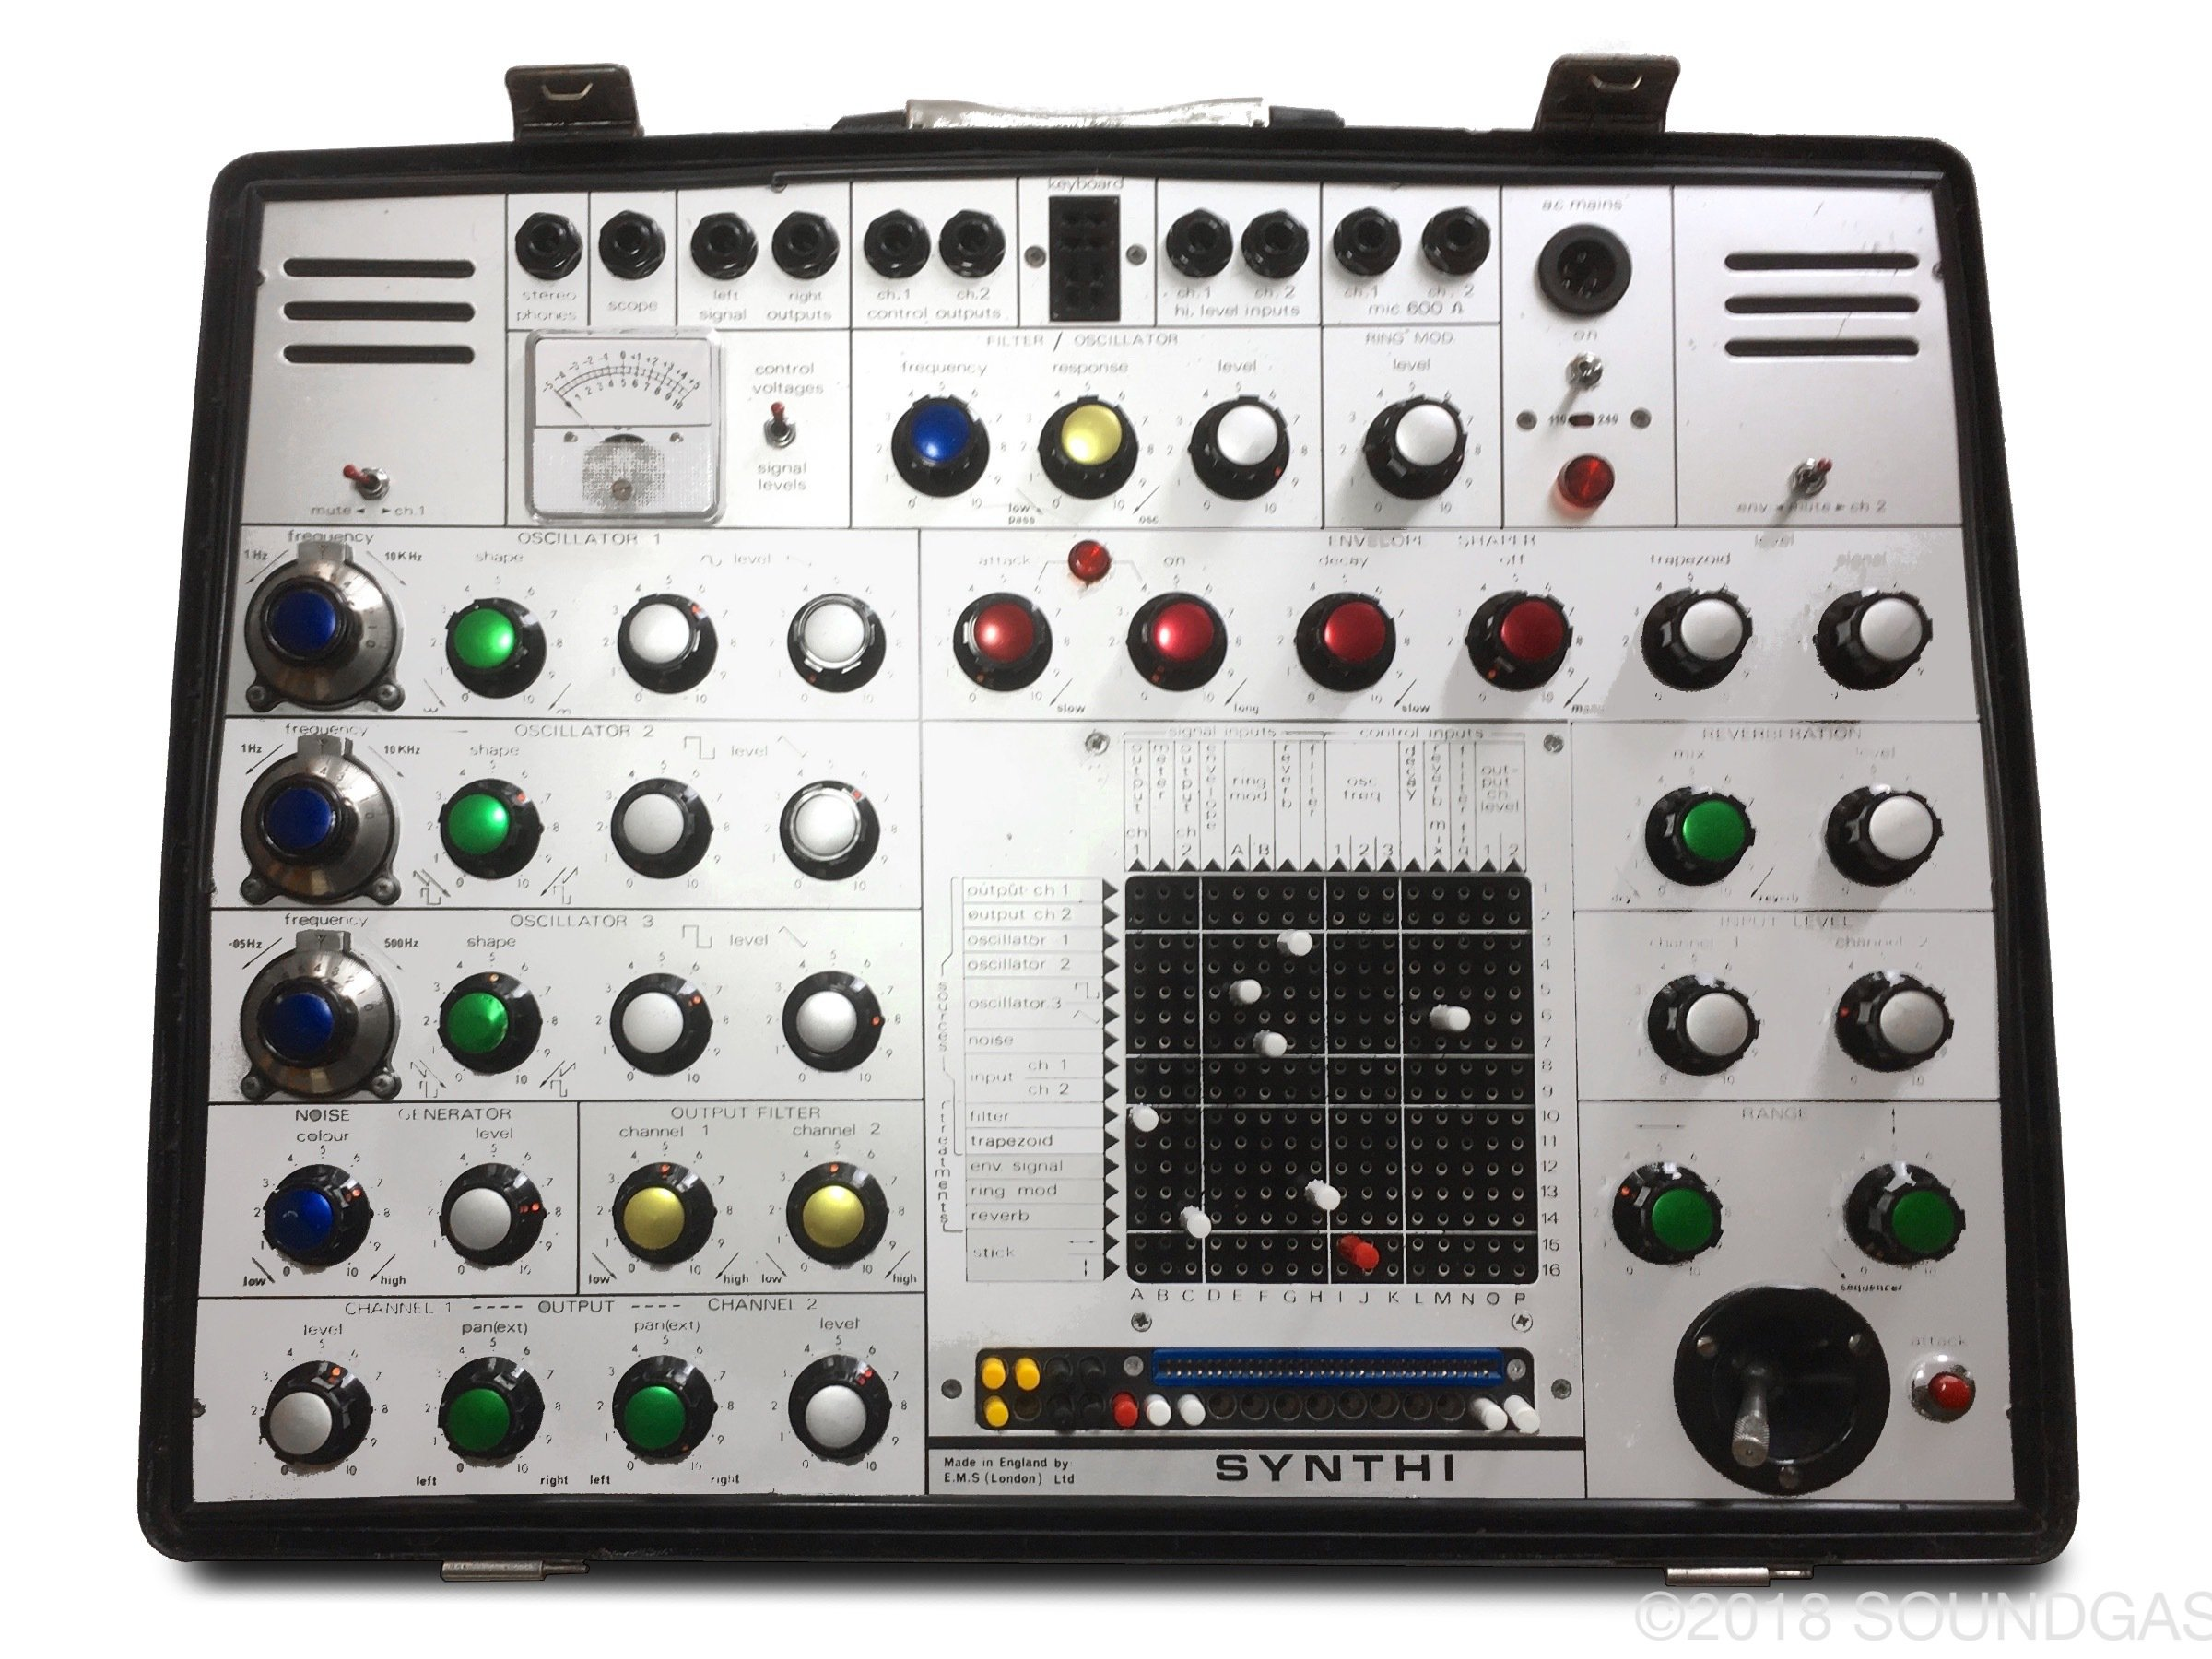 EMS-Synthi-A-Analog-Synthesizer-Cover-2_dc9af61b-e7f0-4b7d-9871-3c2da35acde4